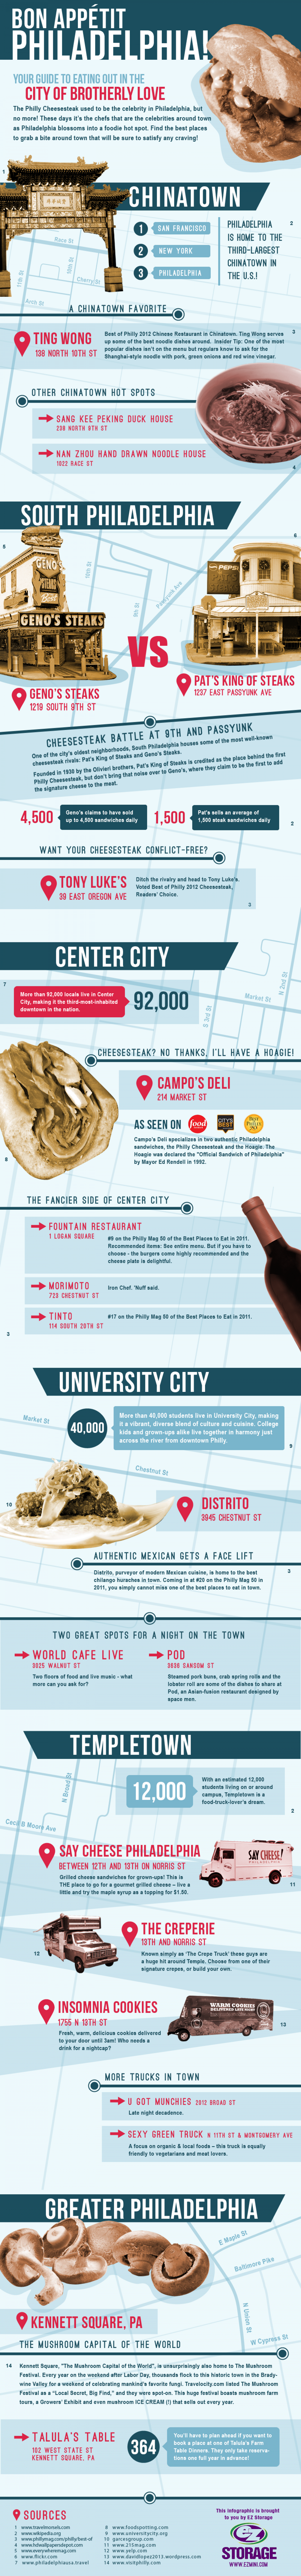 Philly Food Guide Infographic